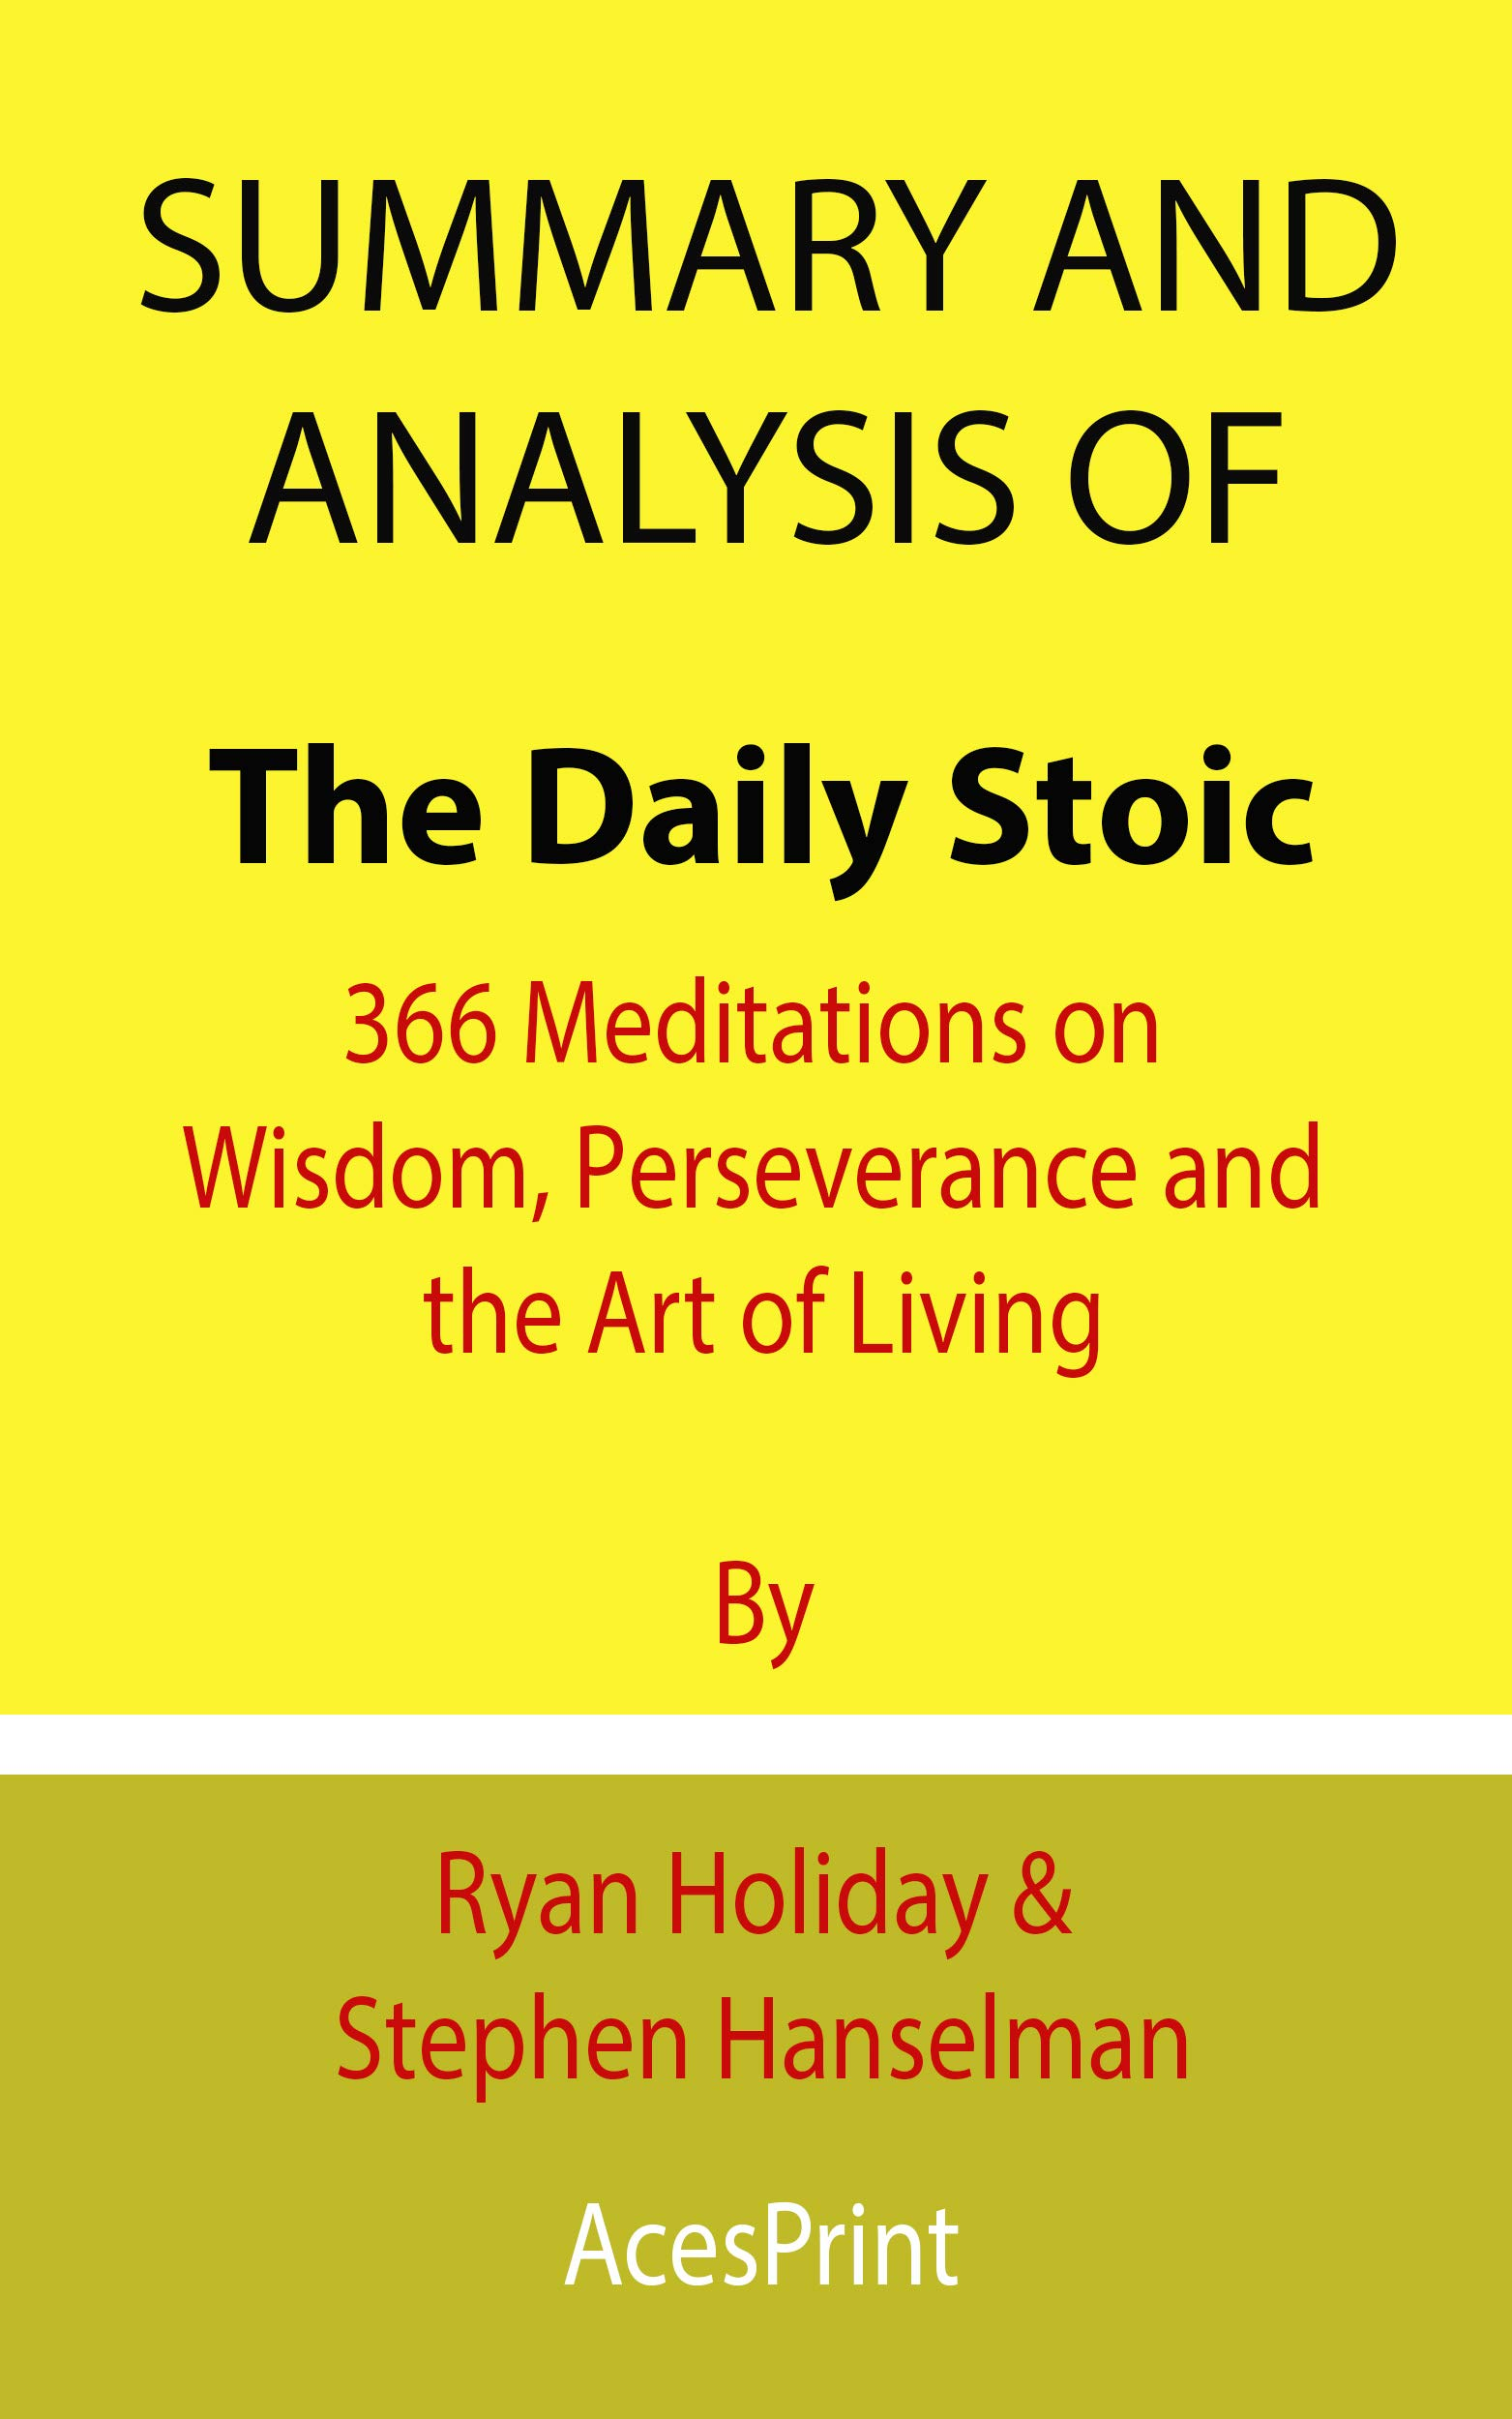 Summary and Analysis of The Daily Stoic: 366 Meditations on Wisdom, Perseverance and the Art of Living By Ryan Holiday & Stephen Hanselman